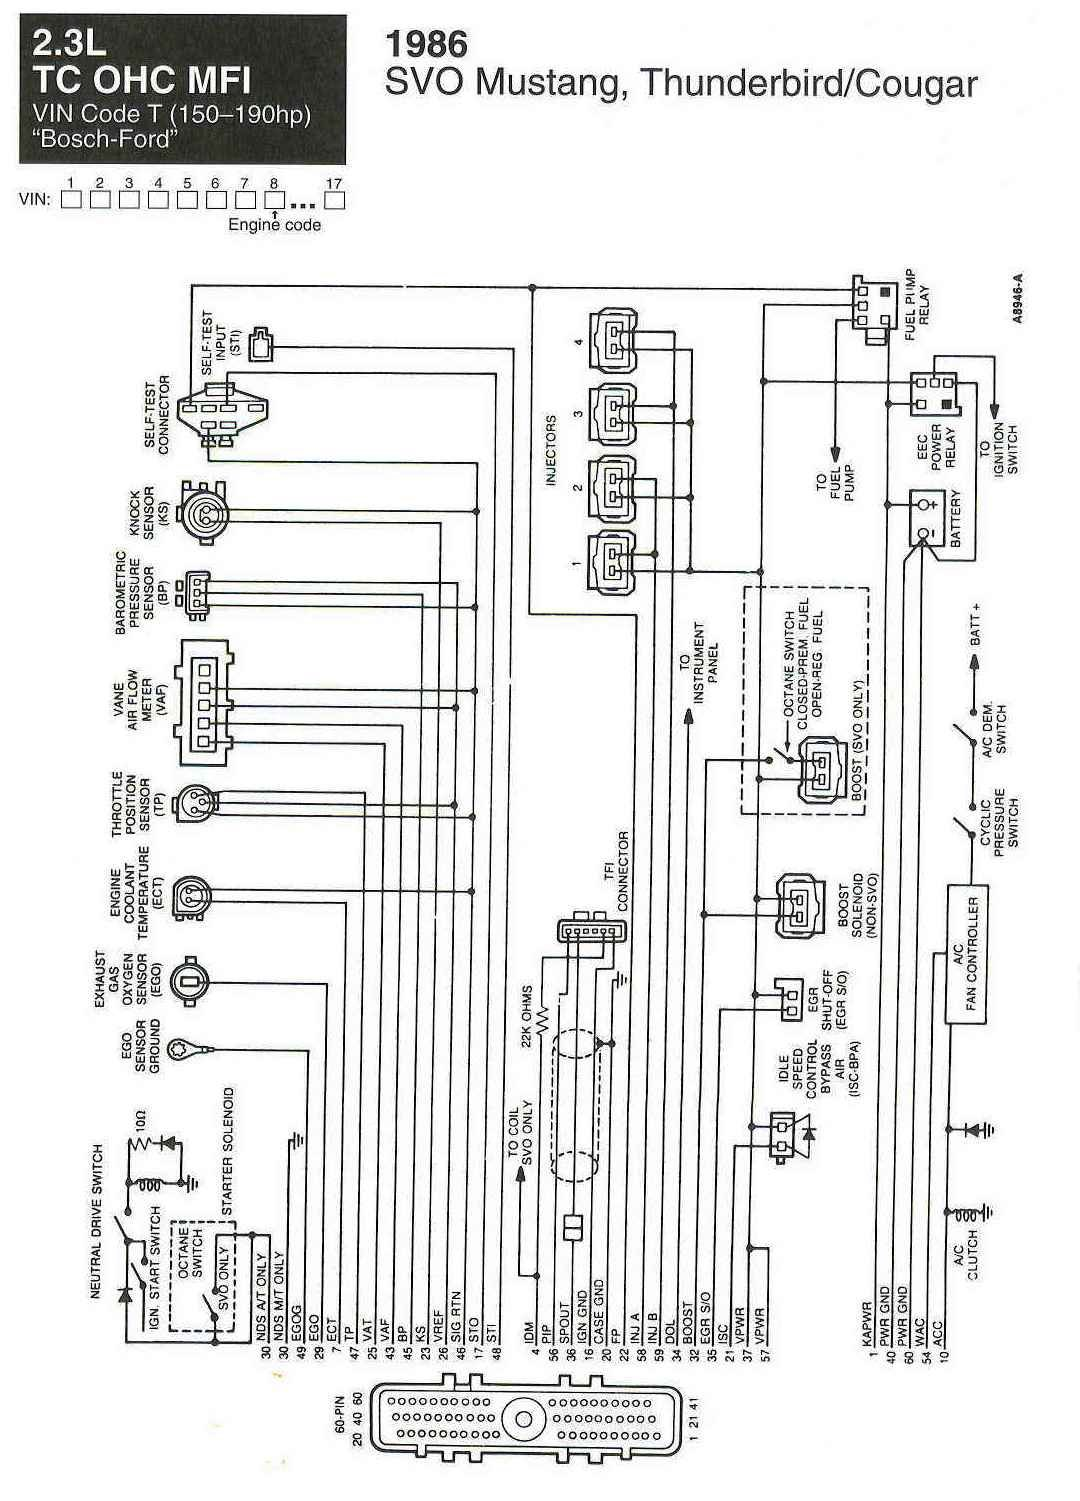 hight resolution of wiring diagrams for svo ford mustang forum 1986 mustang wiring diagram on wiring diagram for 1986 mustang